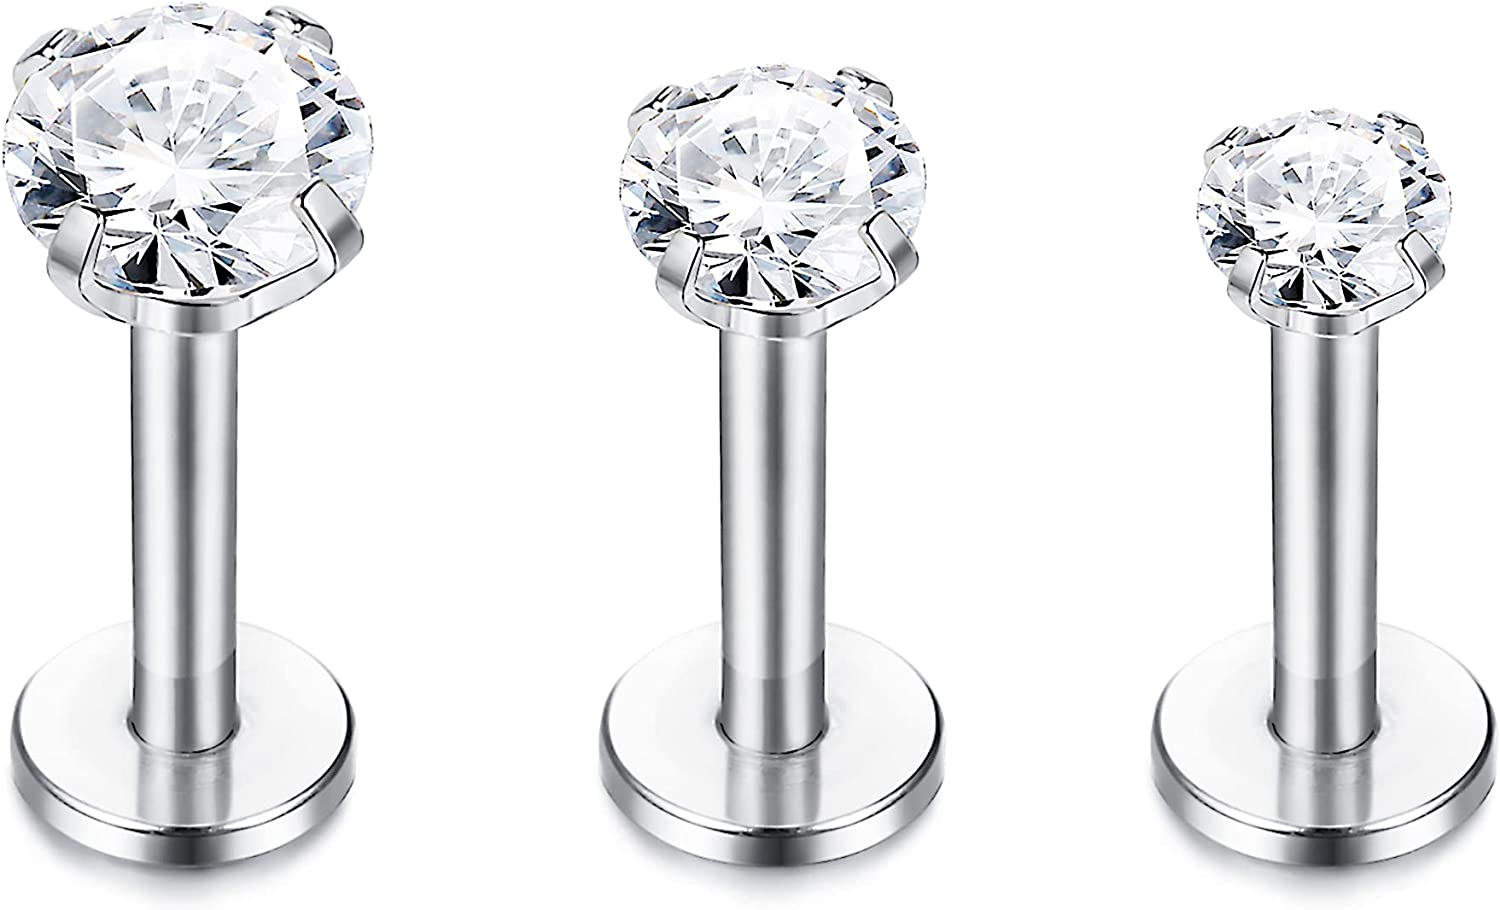 Sllaiss 3 Pcs 16G Cartilage Tragus Earrings Stud for Women Men Stainless Steel Plated Round Cubic Zirconia 3mm-5mm Piercings Set Body Jewelry Lip Piercing Nose Studs